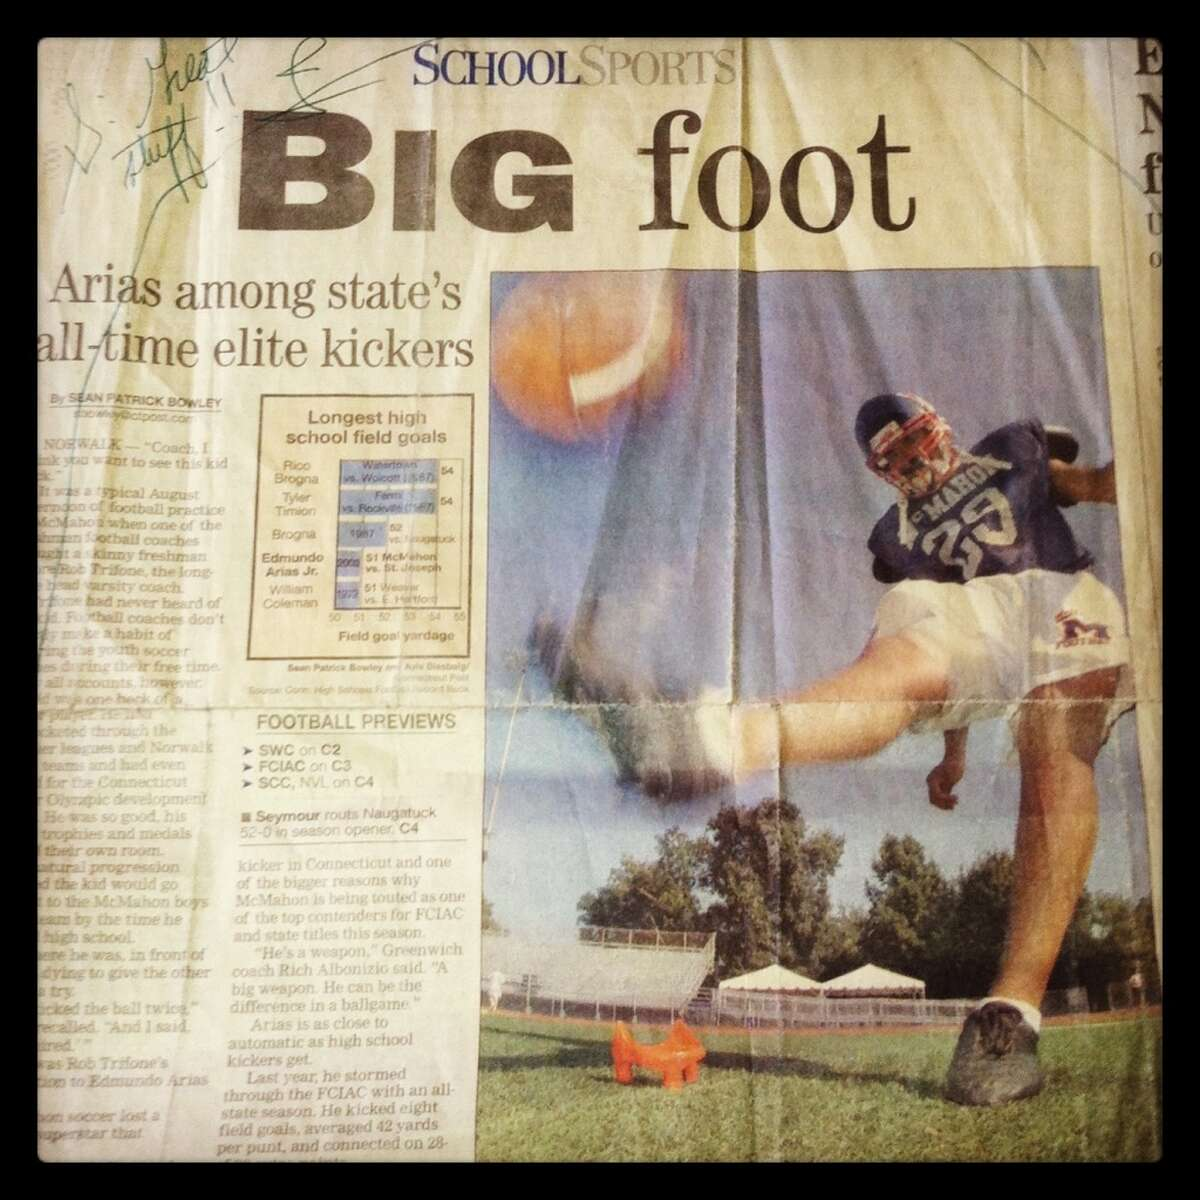 September 17, 2004: My first story for Connecticut Post: A feature on McMahon kicker Edmundo Arias. Below that, my first column on Ridgefield coach Kevin Callahan and his Fairfield Warde son.